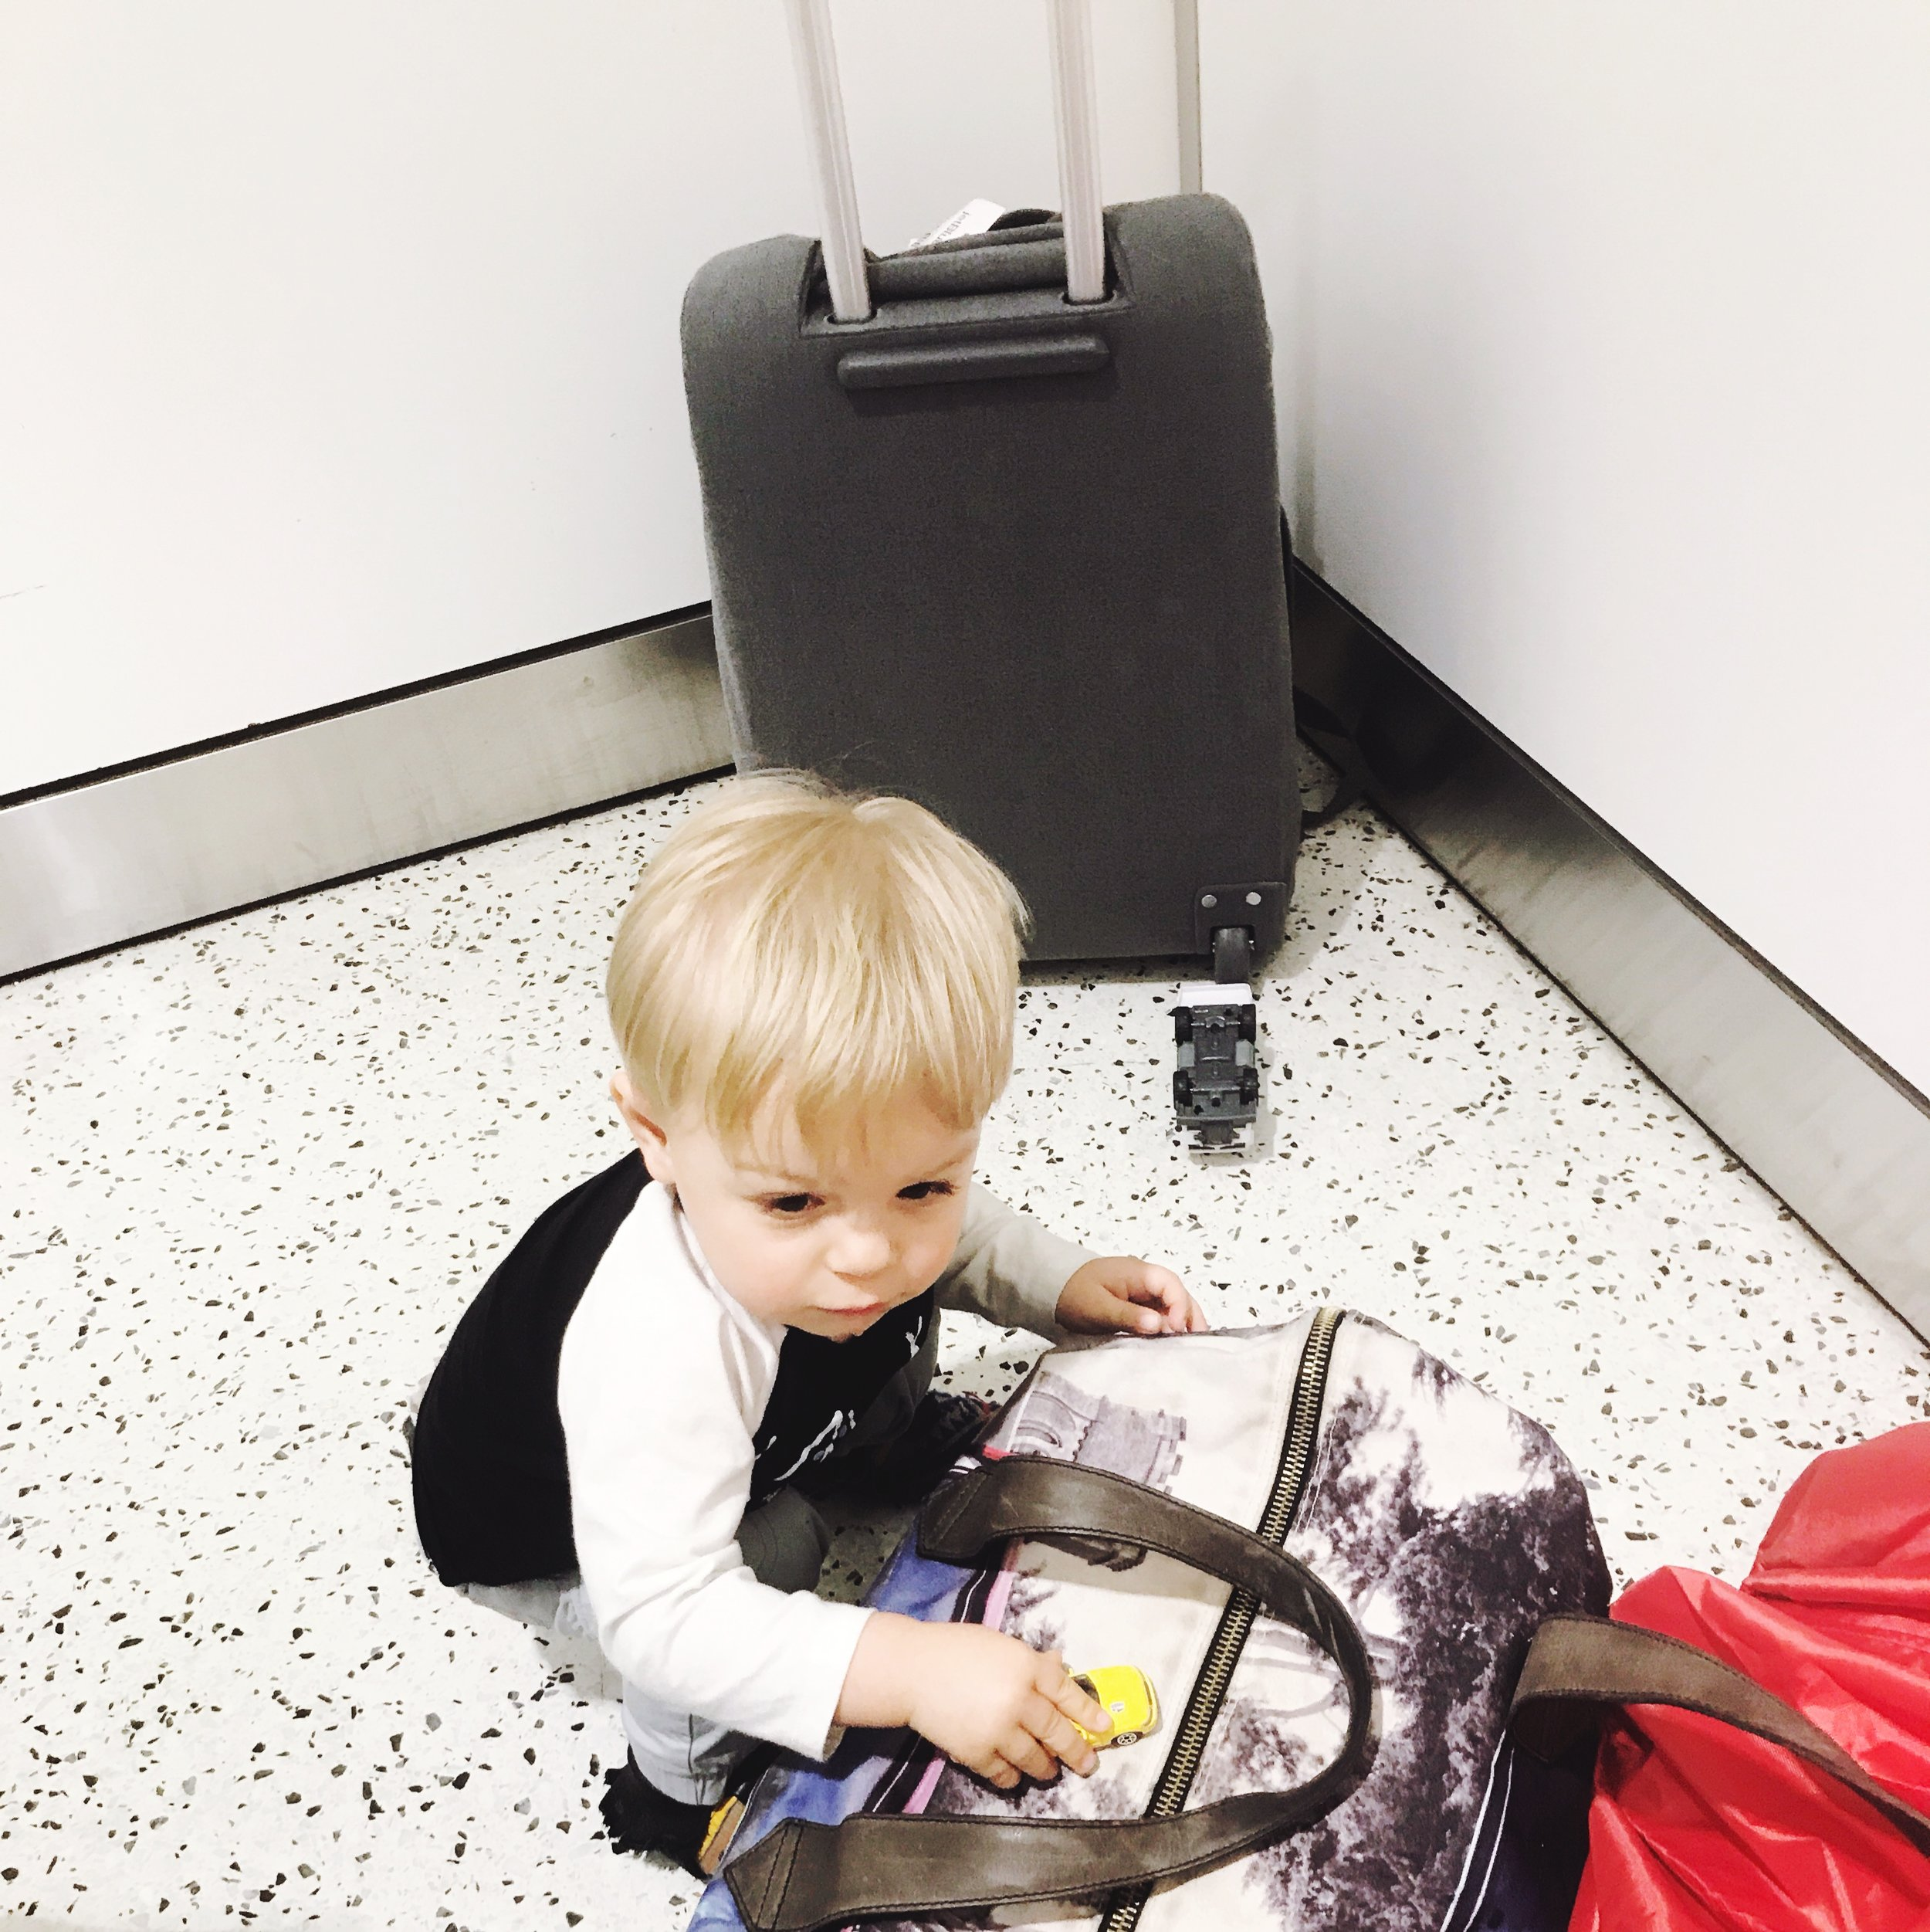 We created a play zone for Aiden to keep him busy while we waited on our luggage after finding out our flight was canceled.